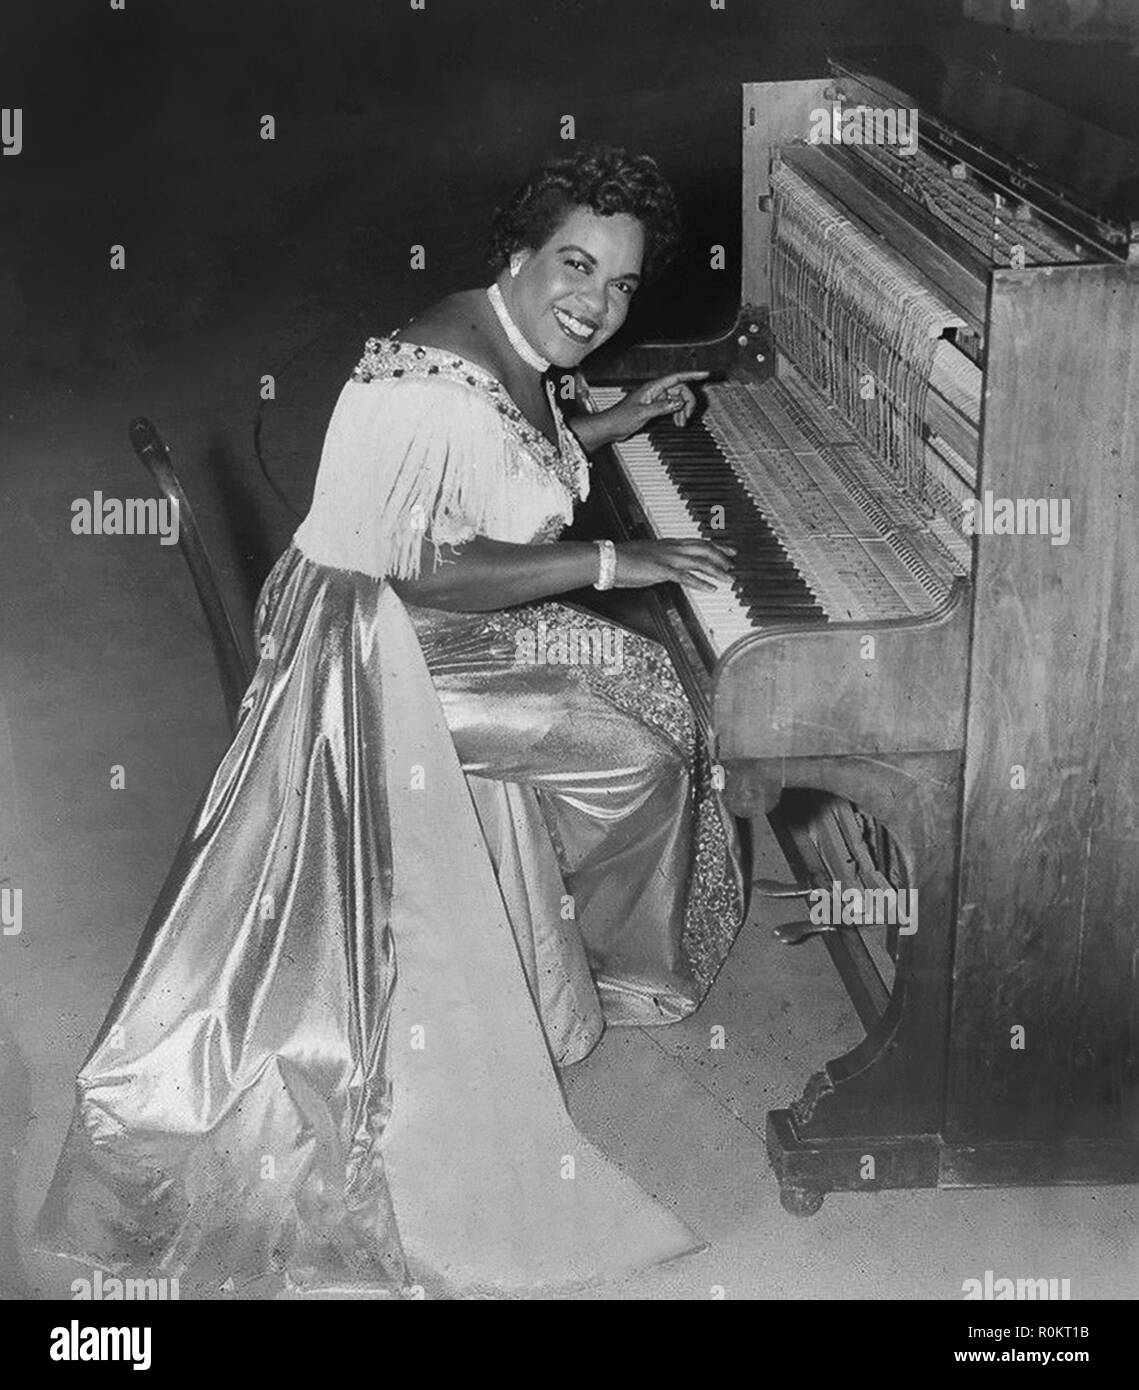 Trinidadian pianist Winifred Atwell in 1952 Stock Photo - Alamy